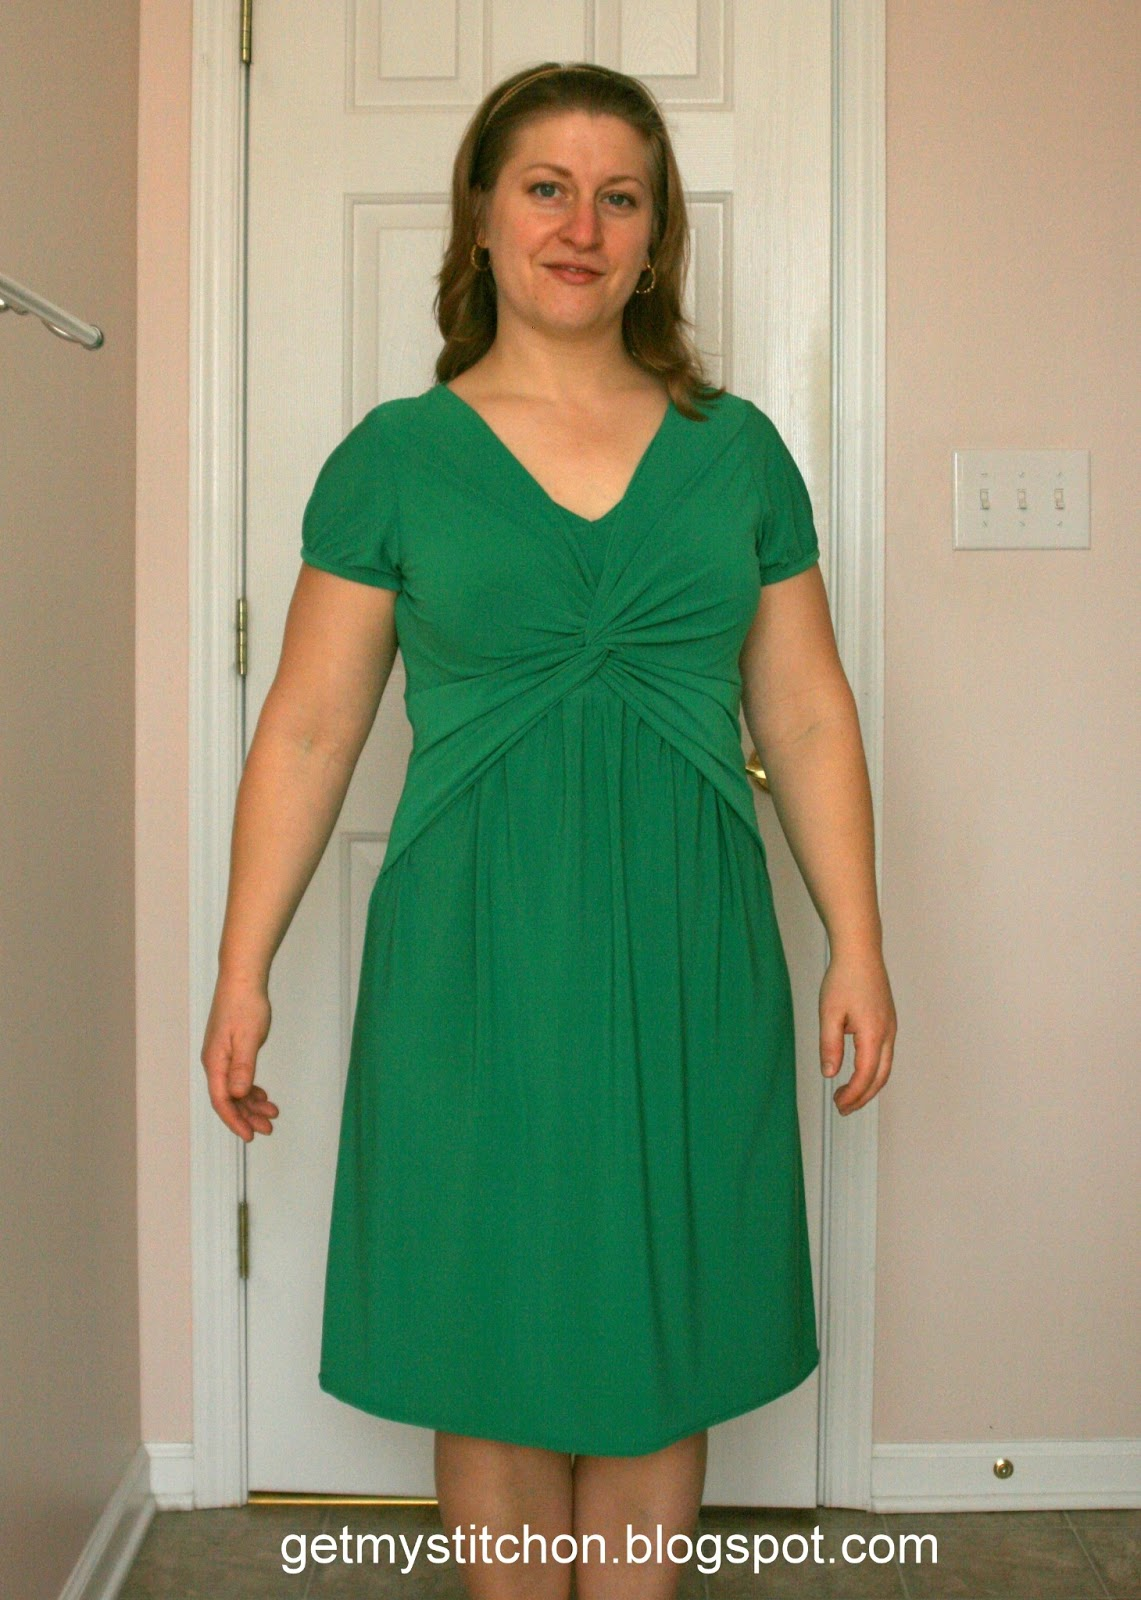 Get My Stitch On: But Not a Real Green Dress,